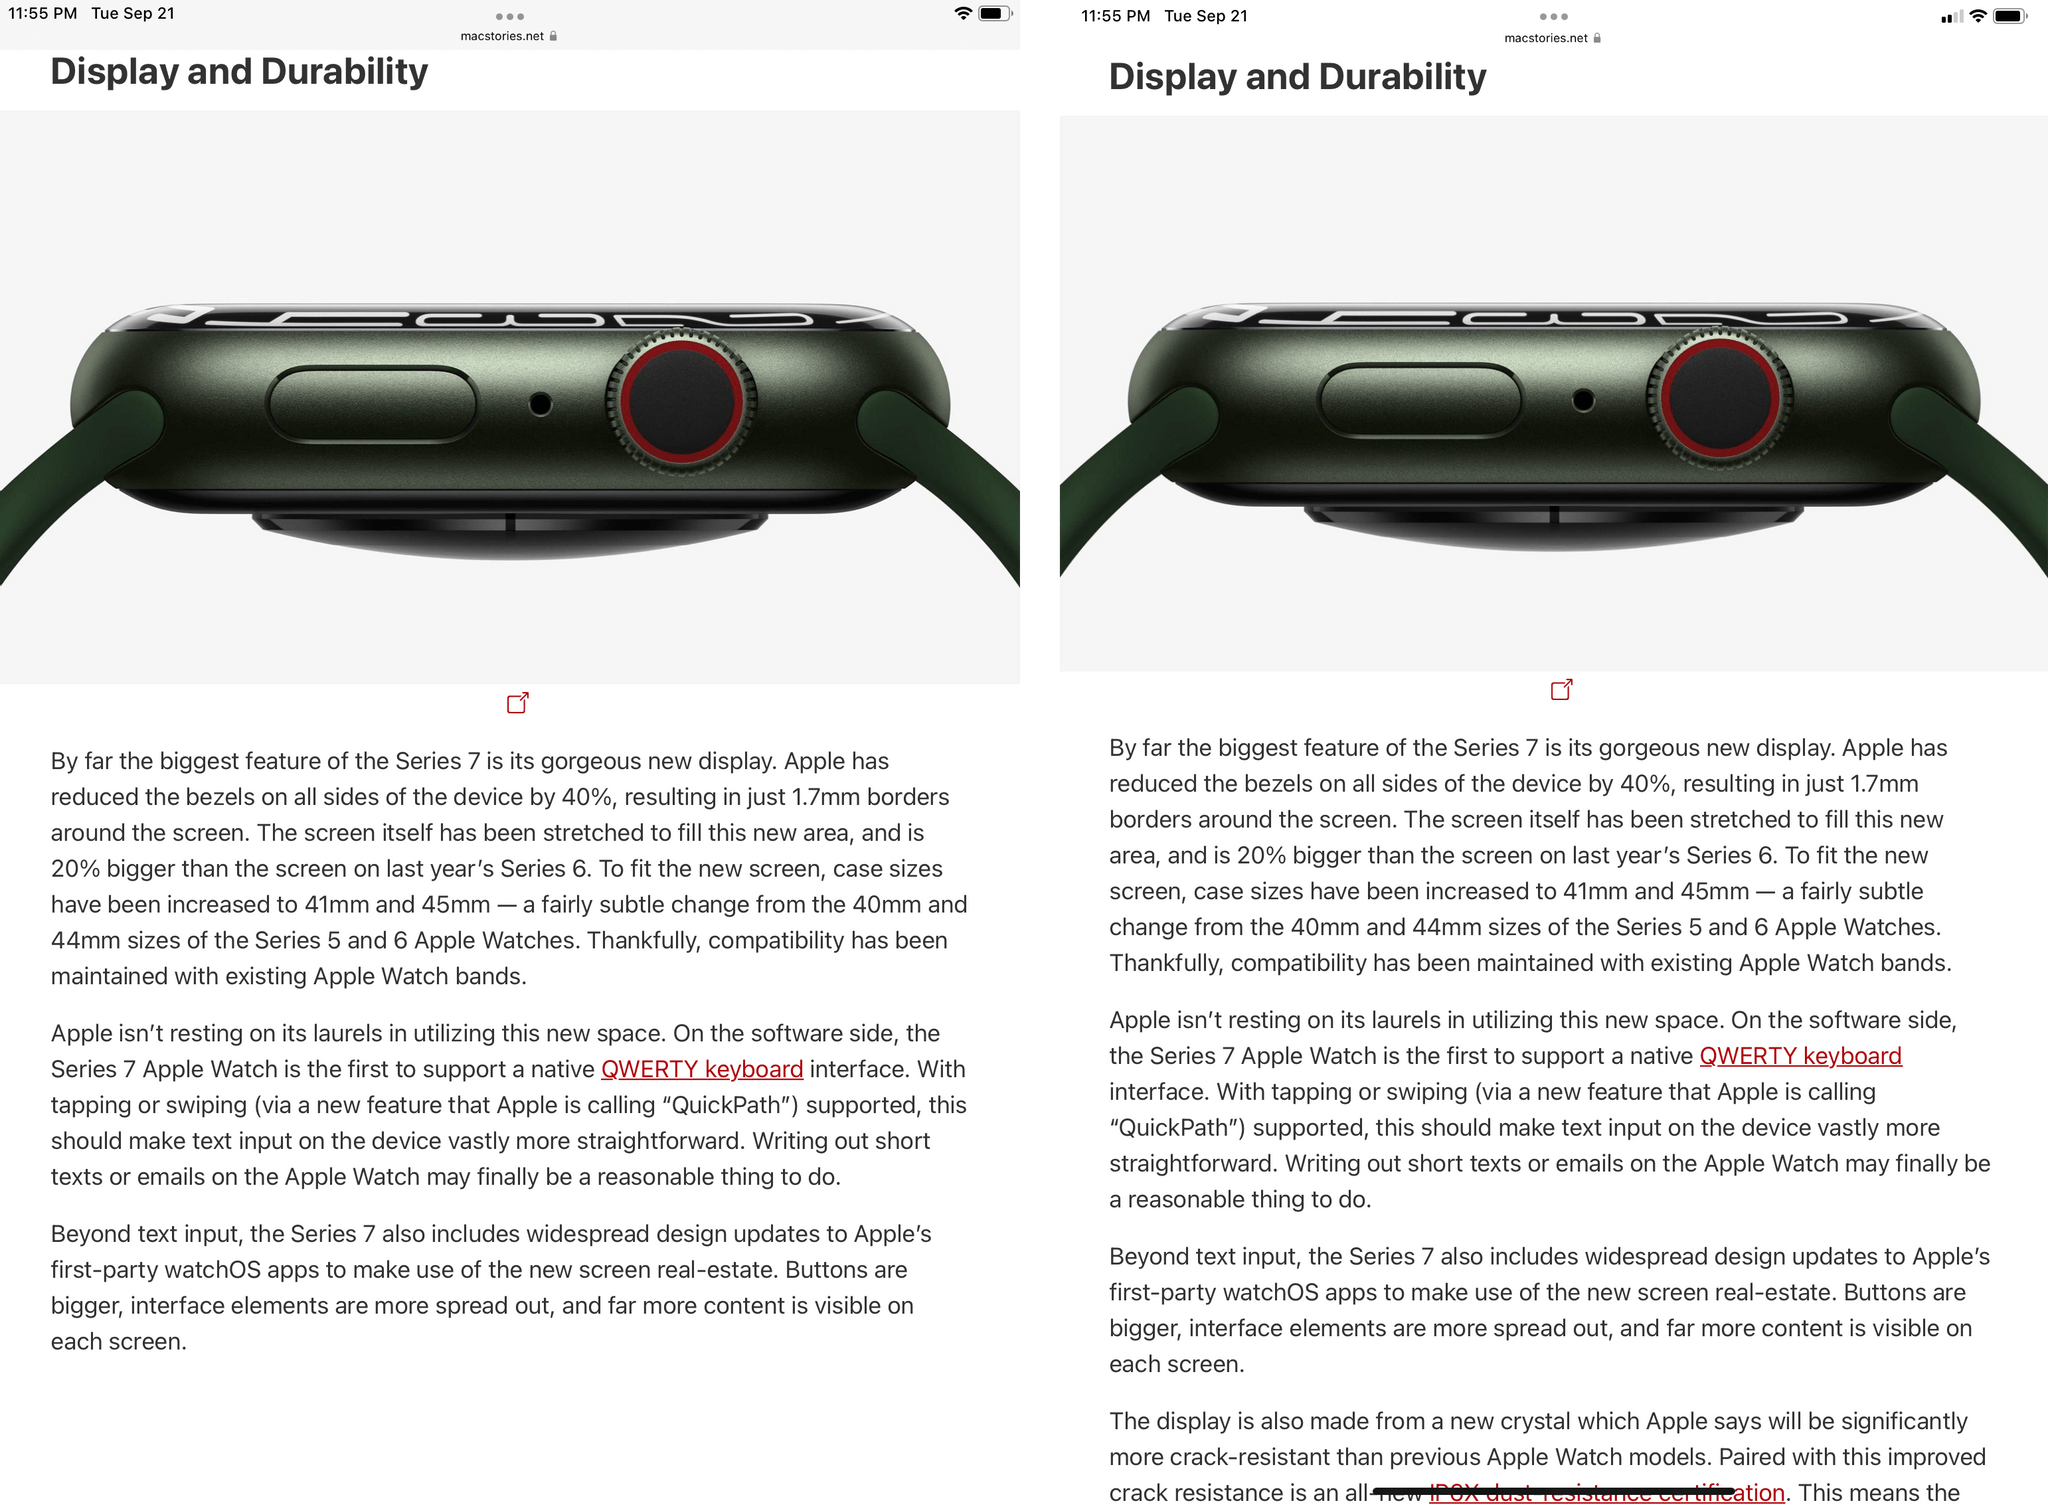 On the new iPad mini, you see three extra lines of text in the same article thanks to the taller display in portrait mode.